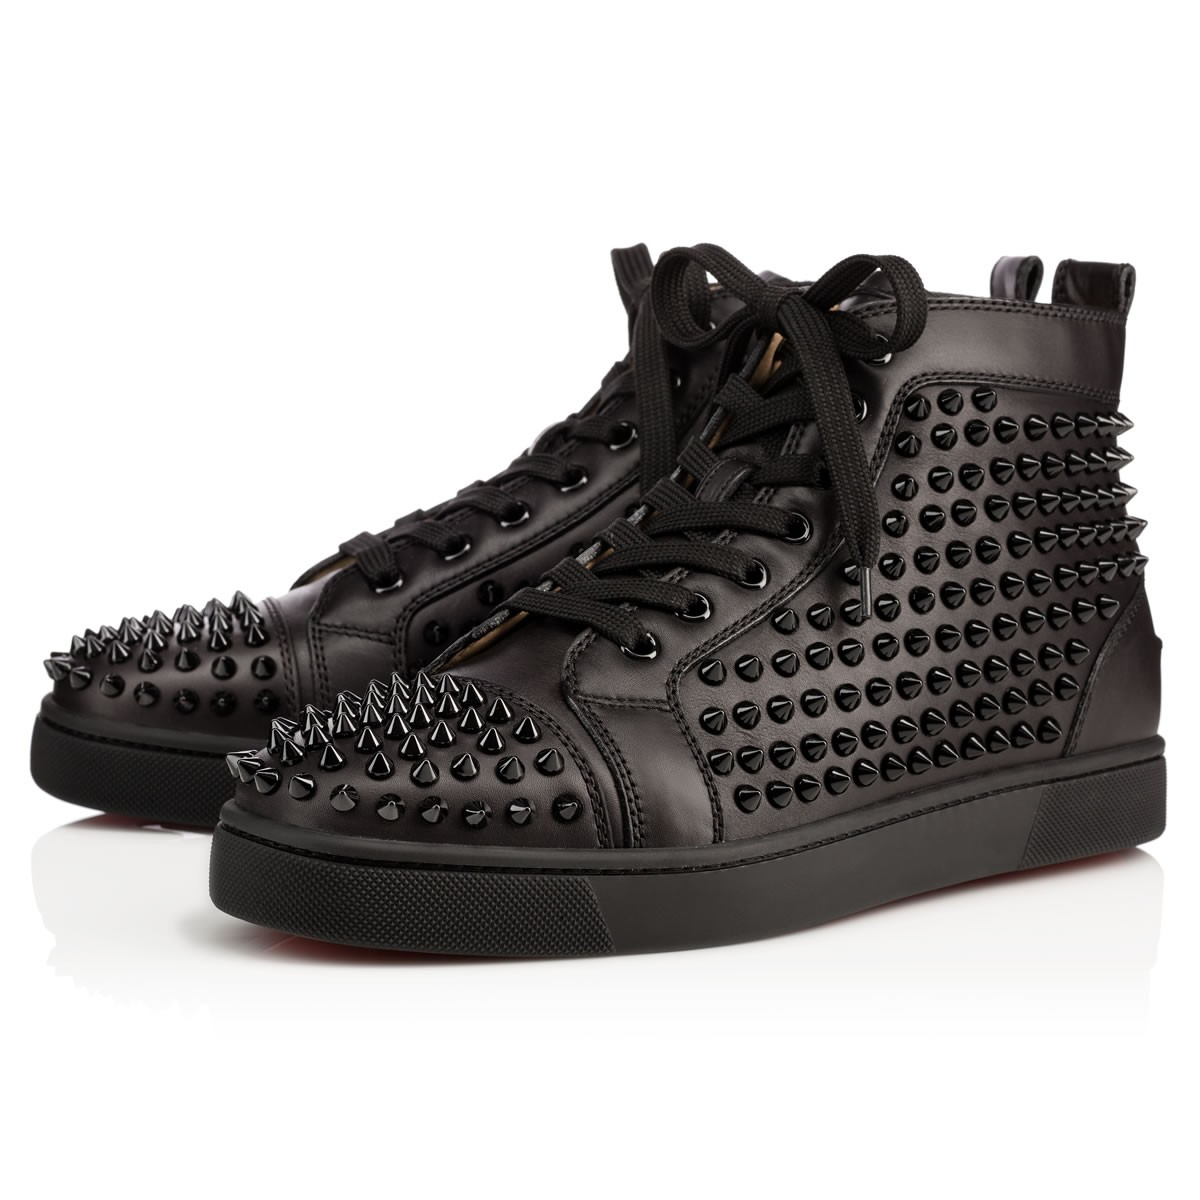 christian louboutin mens shoes online store